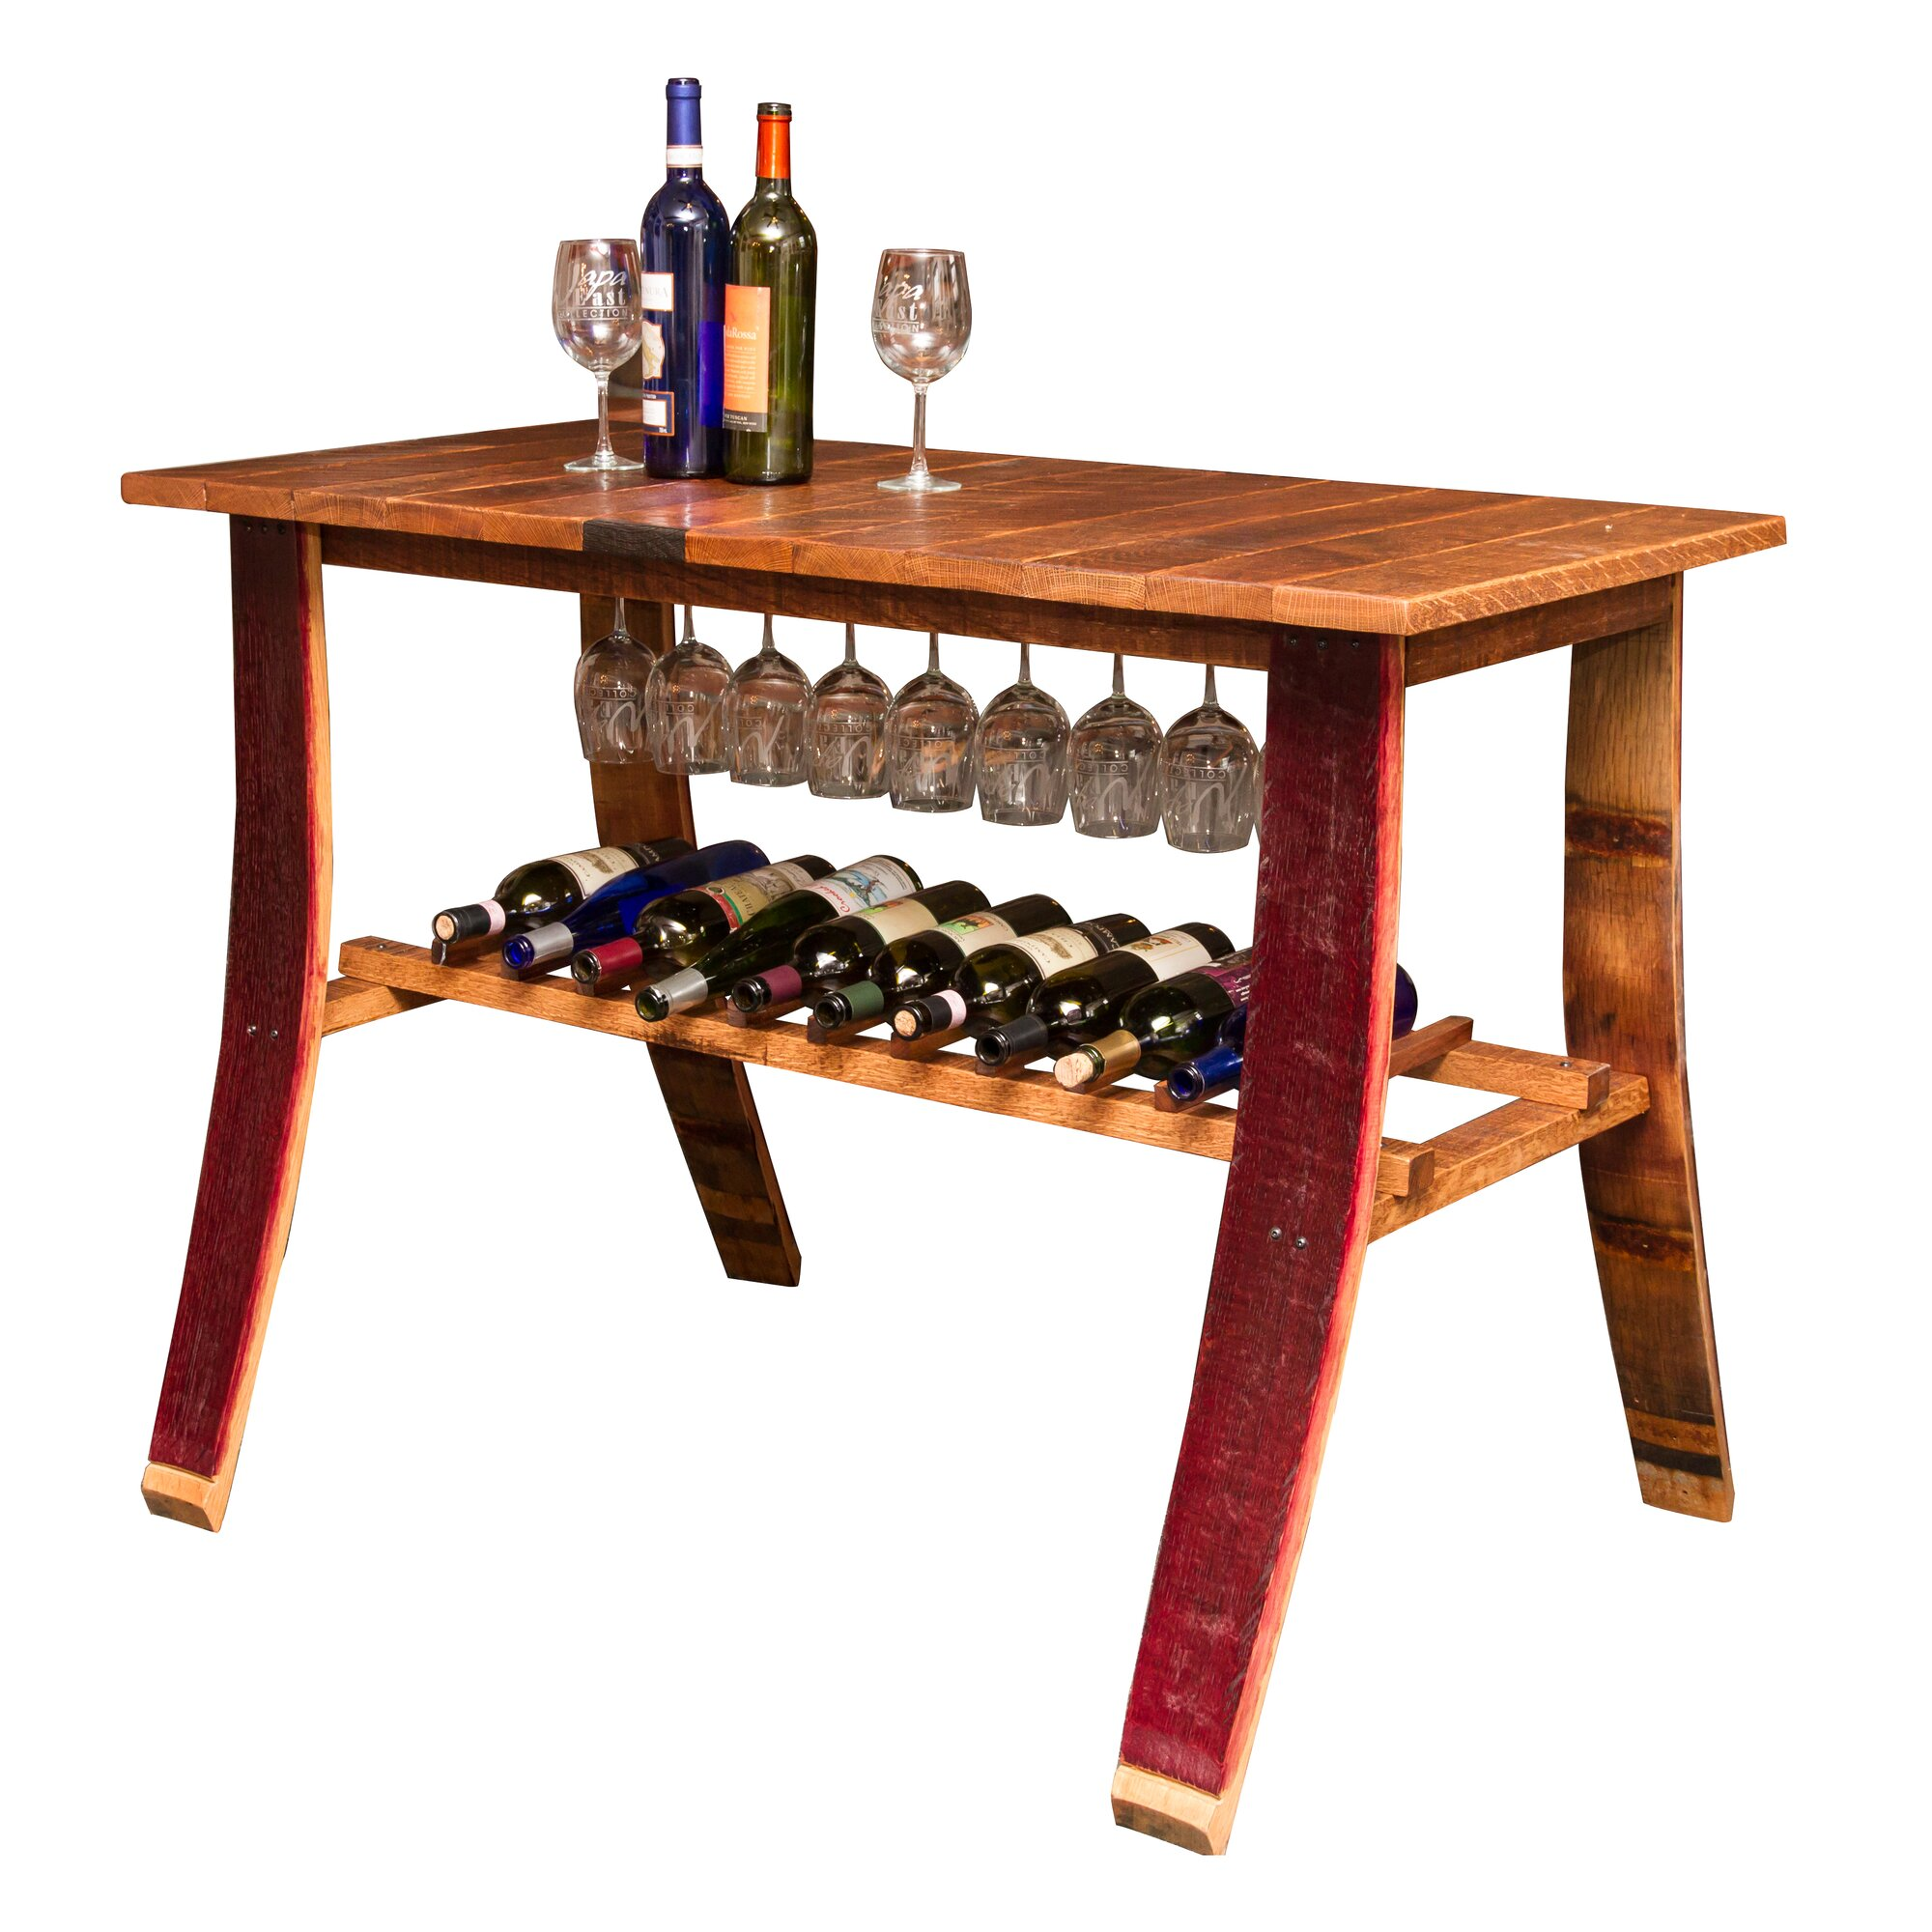 Napa east collection wine country pub tasting table for Cie publication 85 table 2